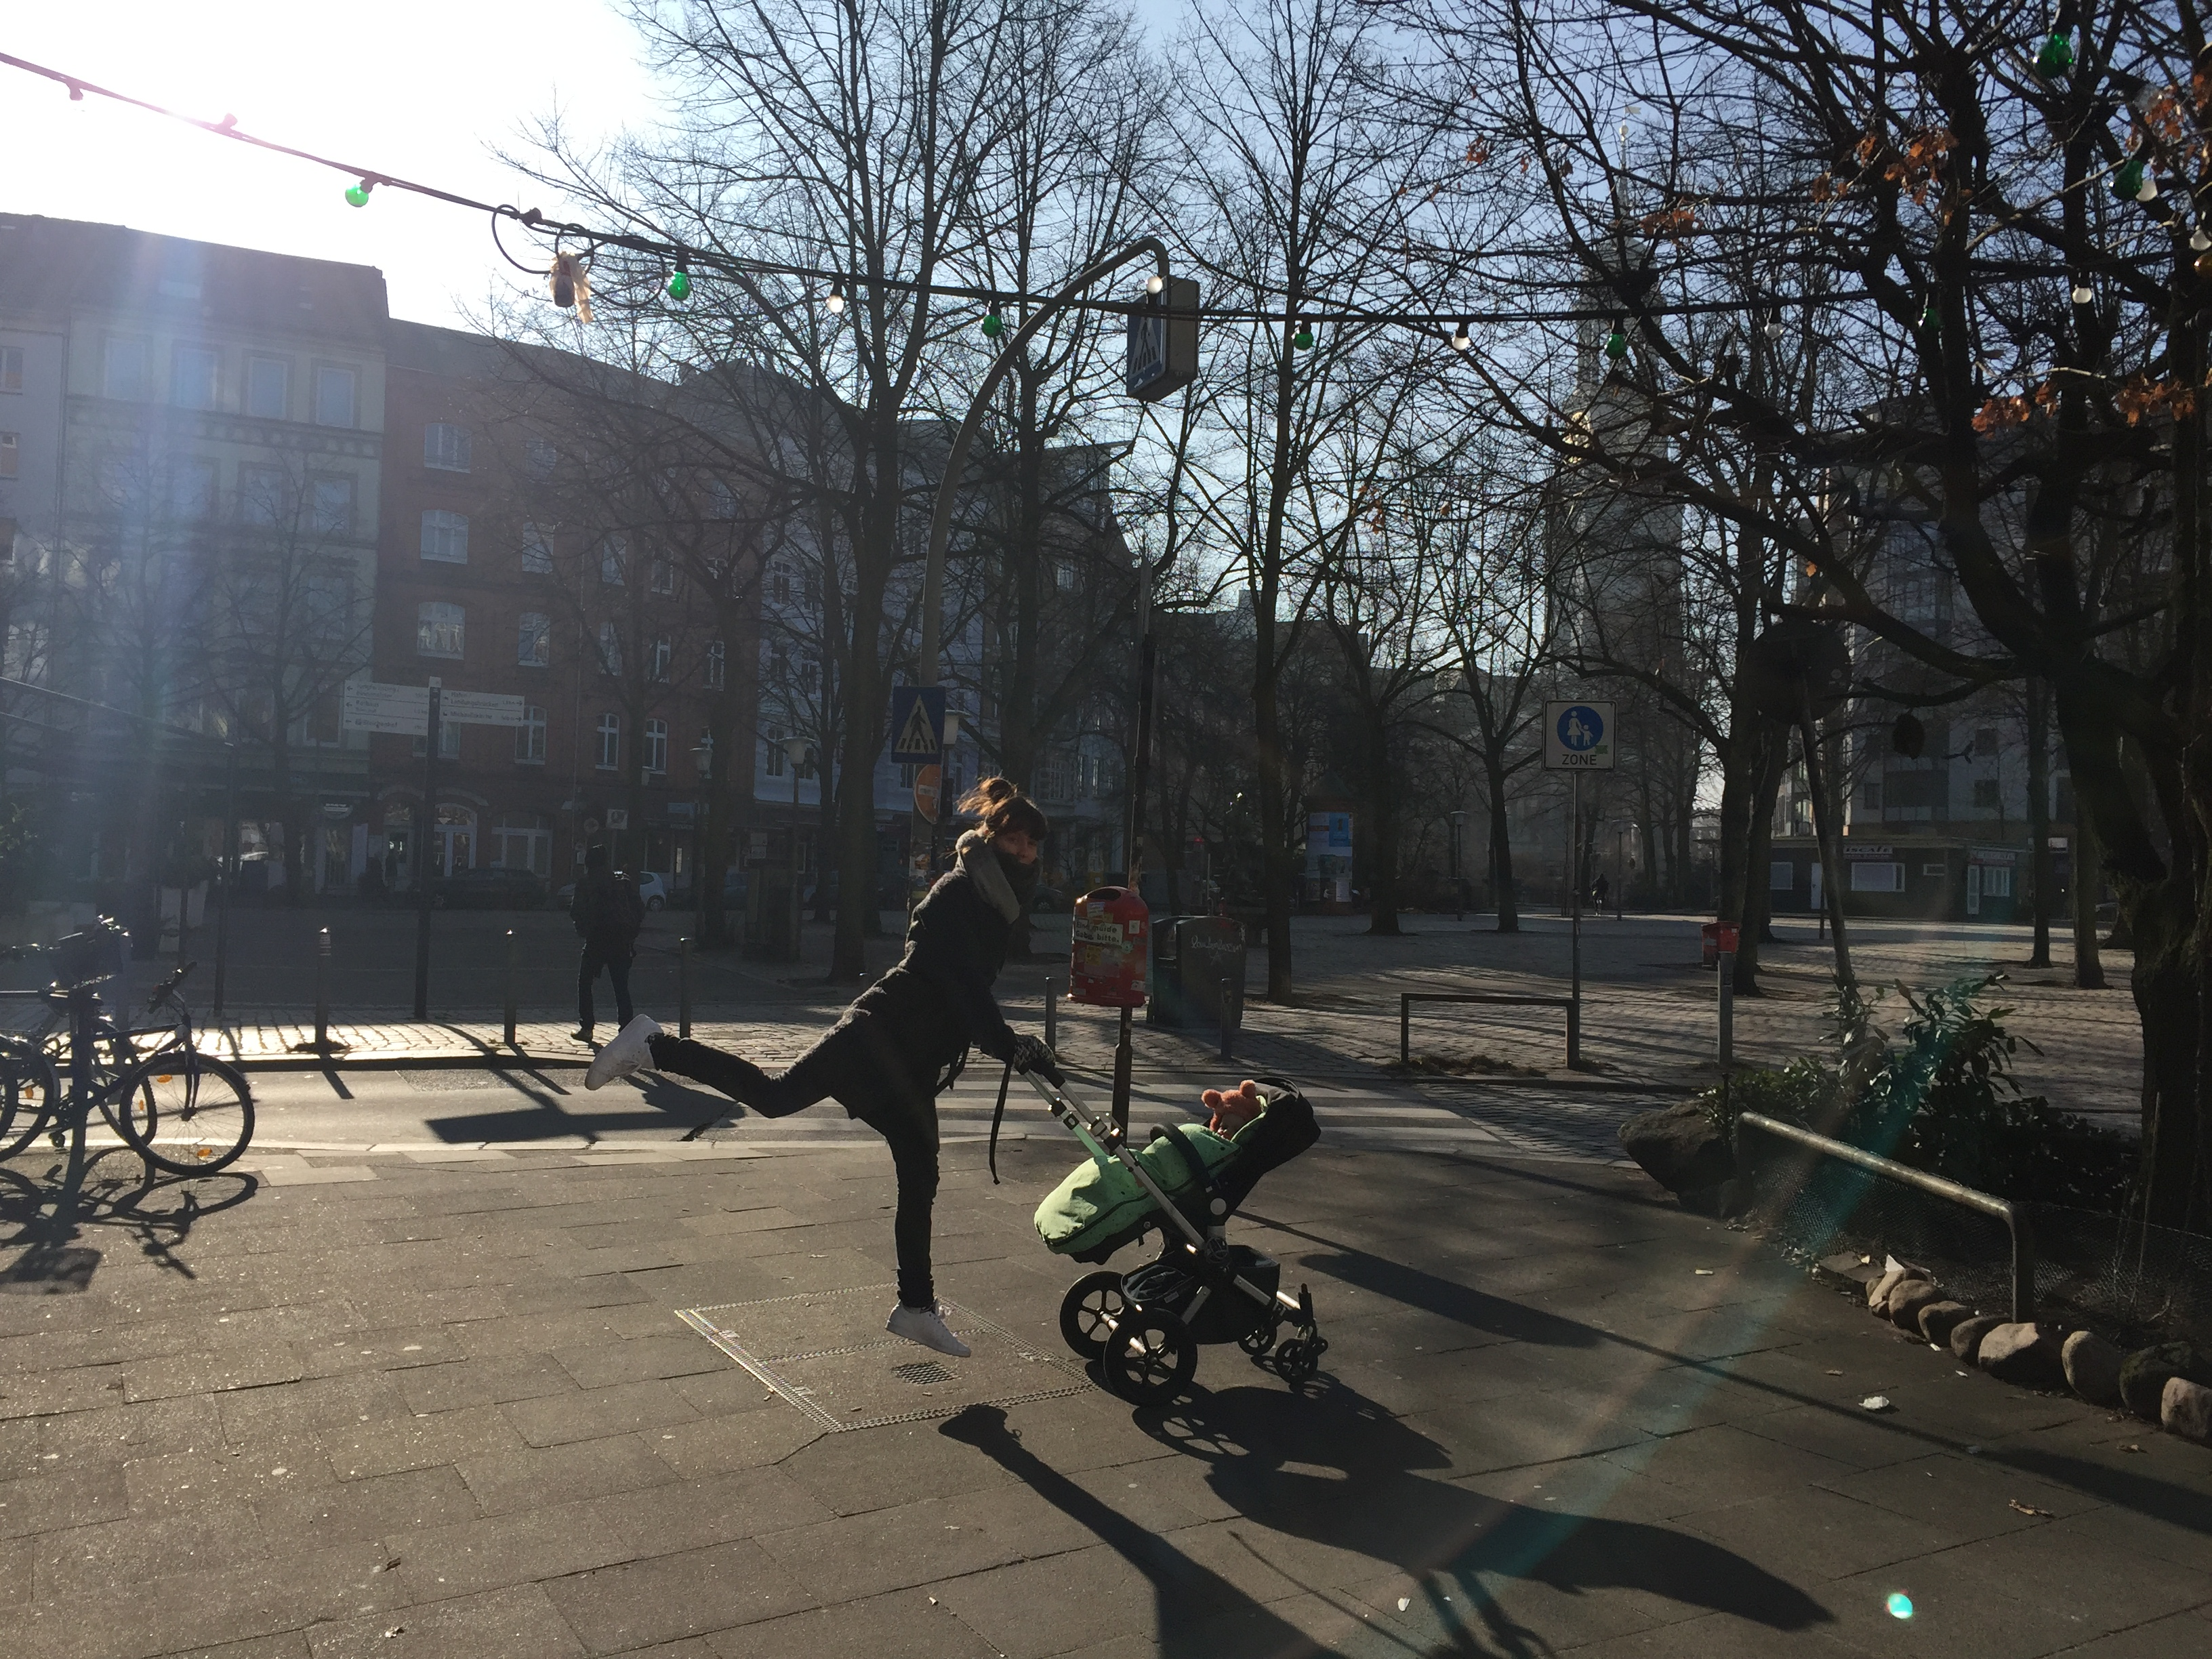 #Parentfriendly citytrippen met baby in Hamburg, het kan!